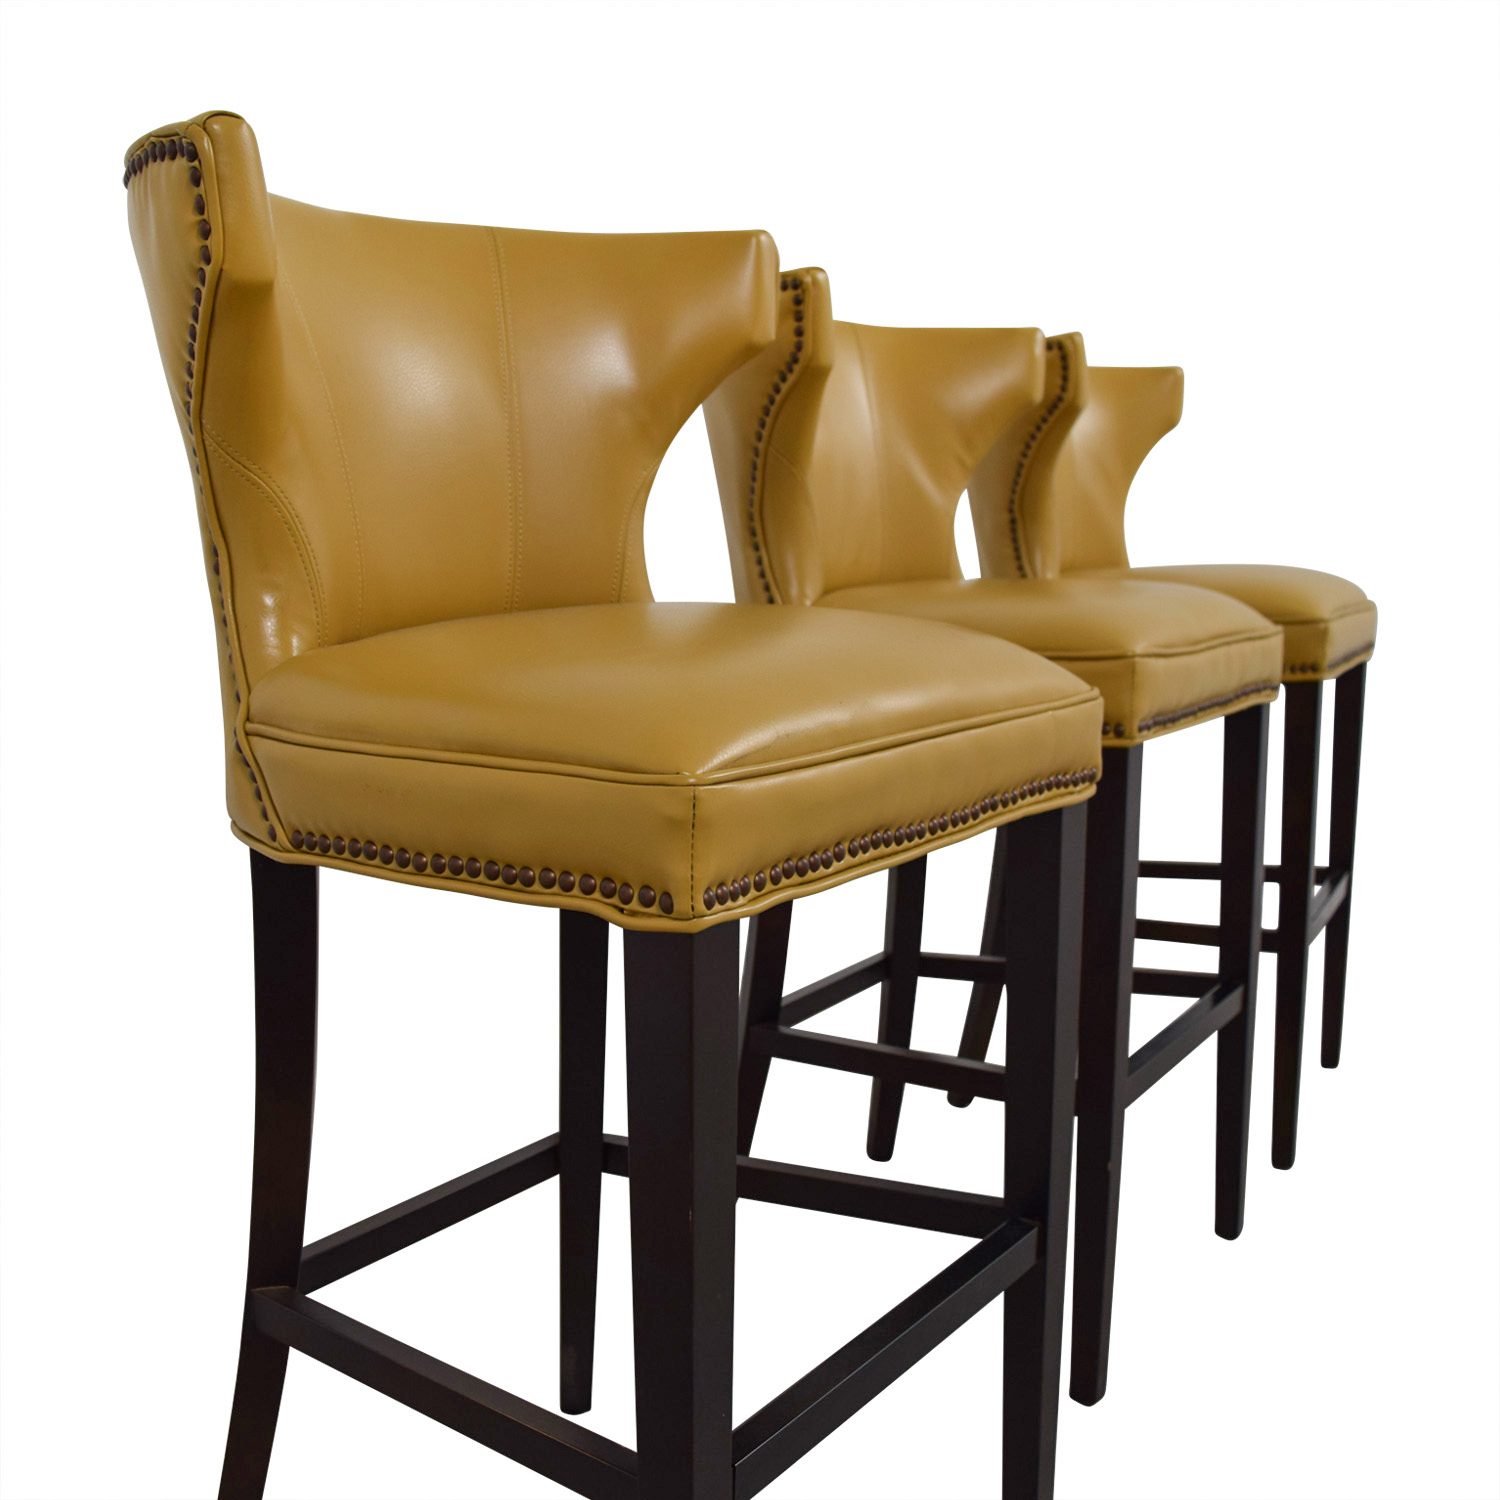 72% Off – Grandin Road Grandin Road Mustard Yellow Bar Stools / Chairs Regarding Grandin Leather Sofa Chairs (Image 2 of 20)